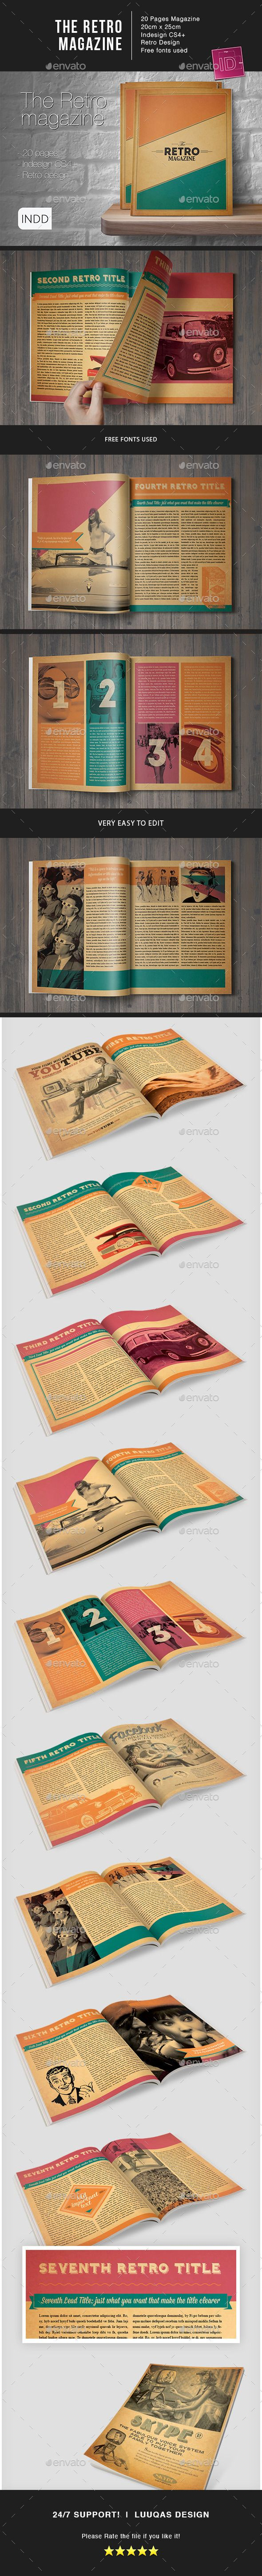 The Retro Magazine Indesign Template